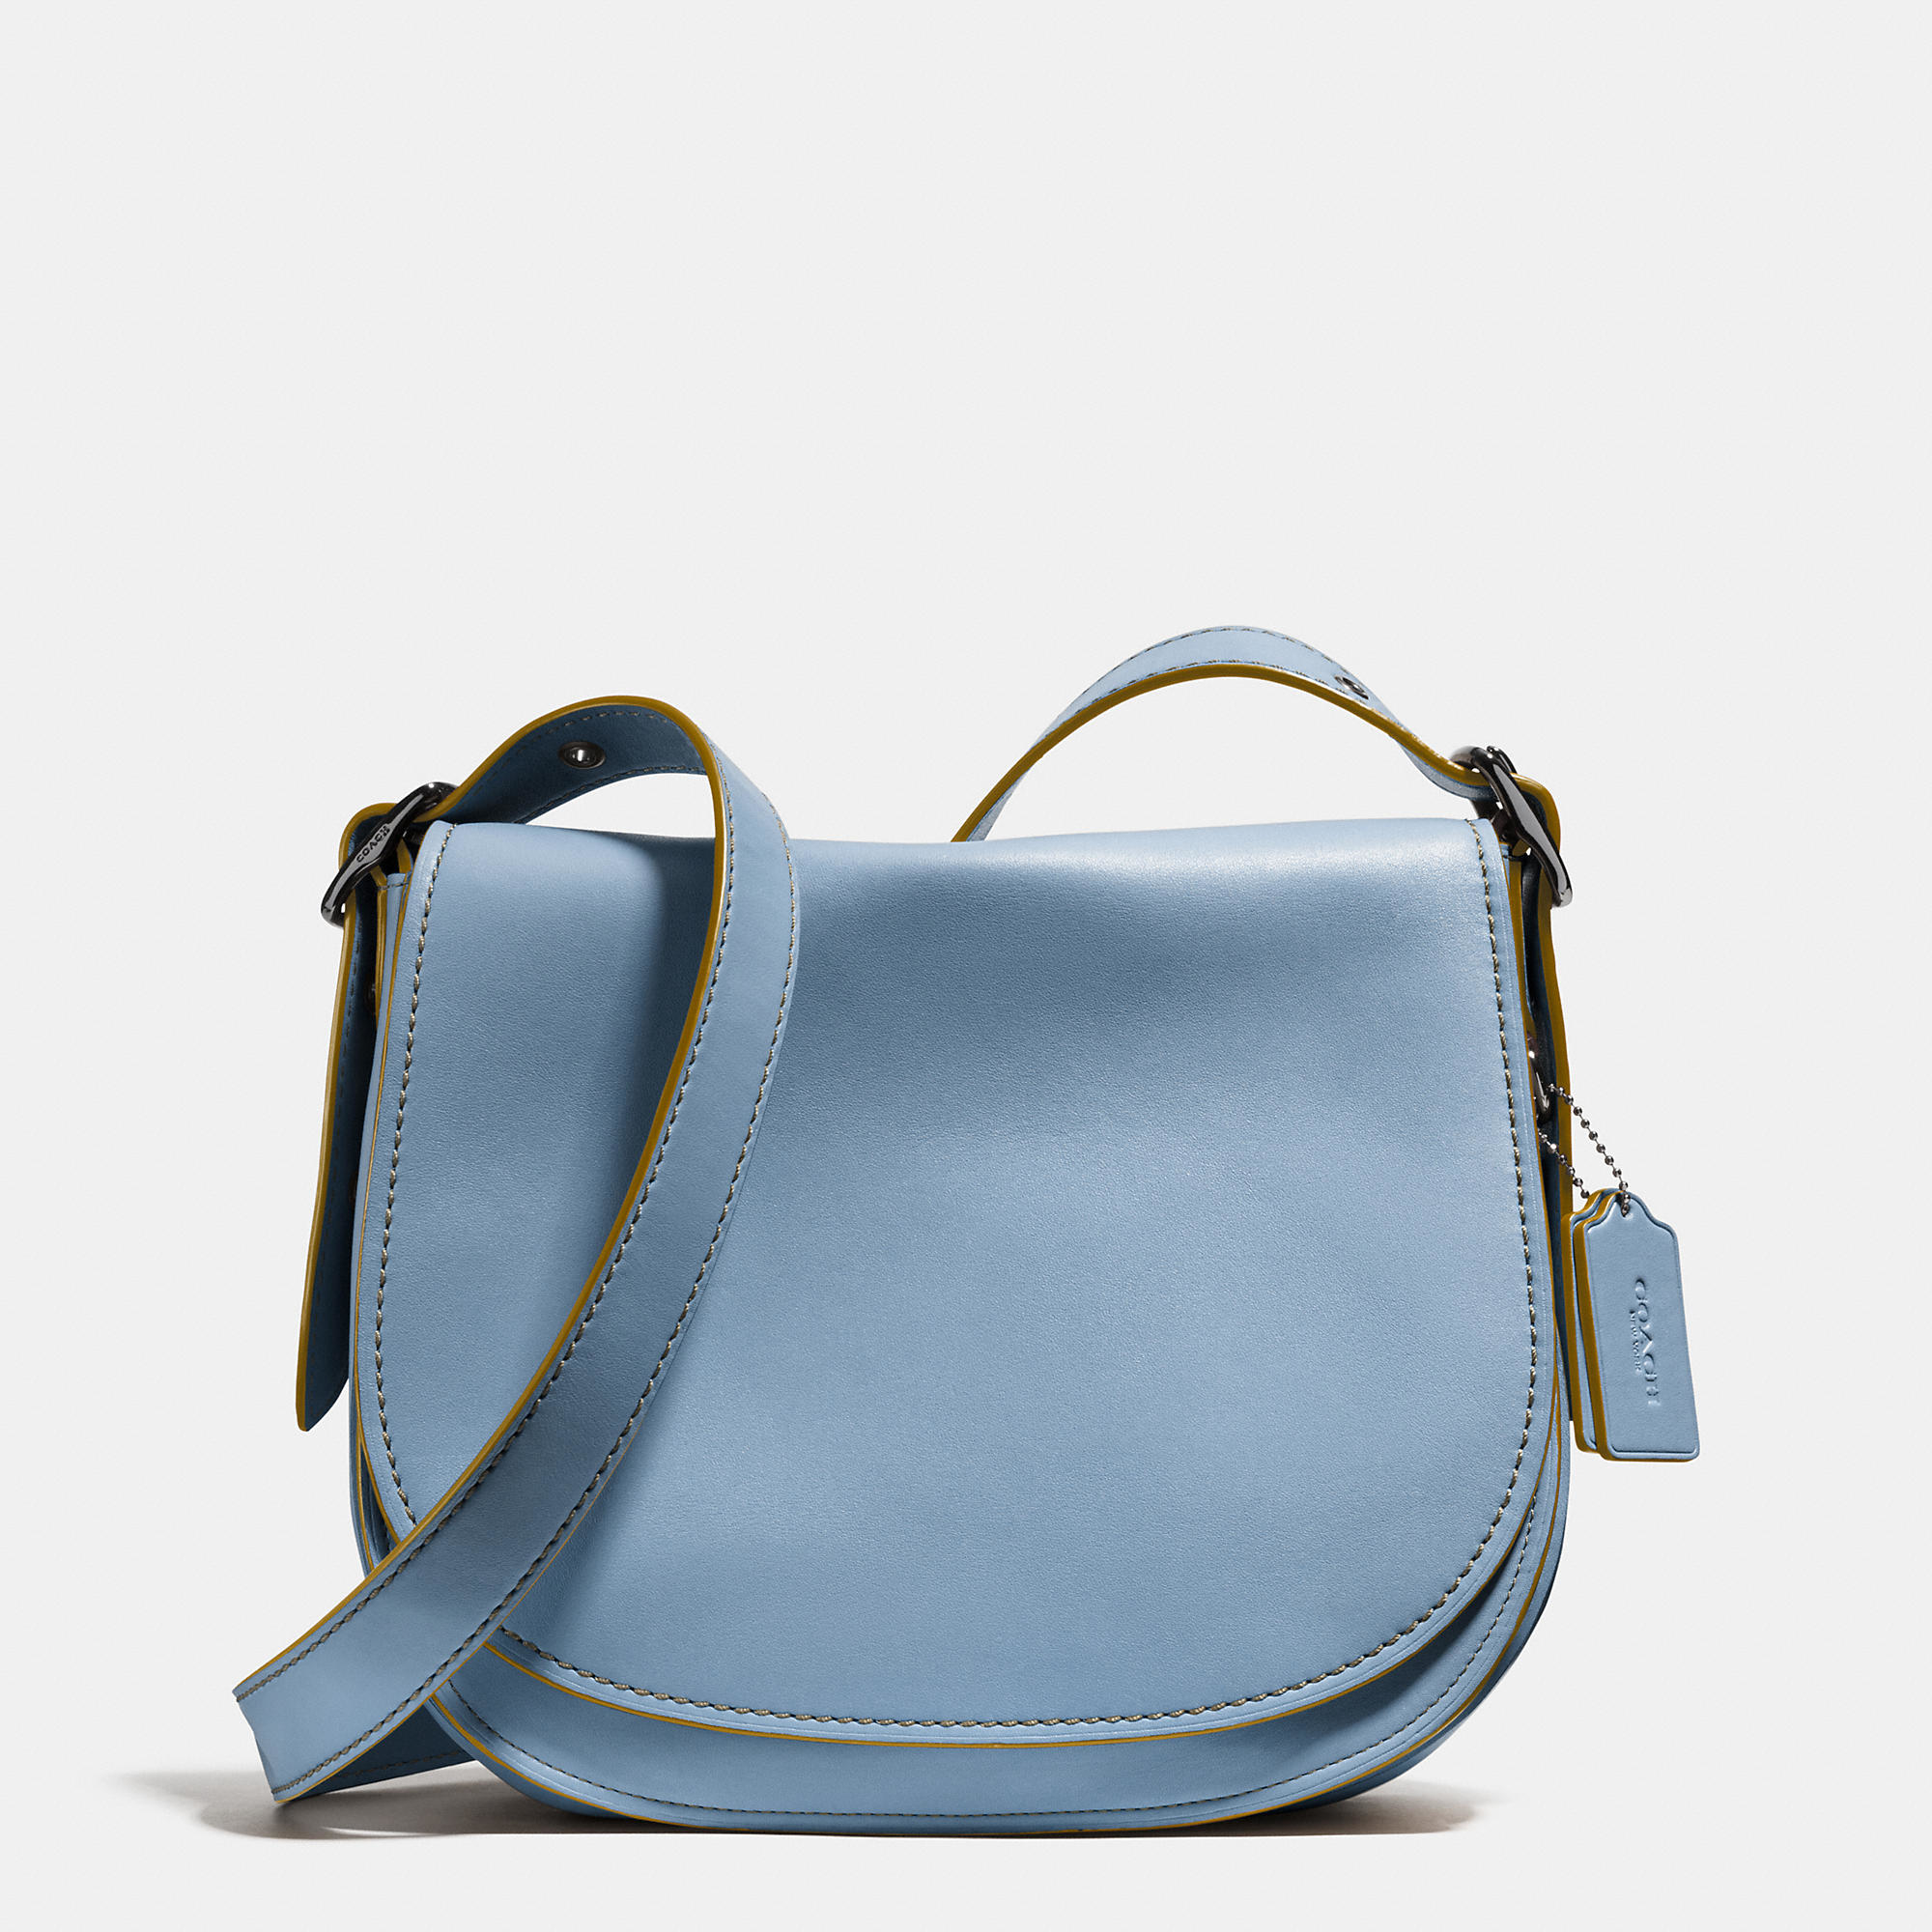 7817dff549ab Lyst - COACH Saddle Bag In Glovetanned Leather in Black